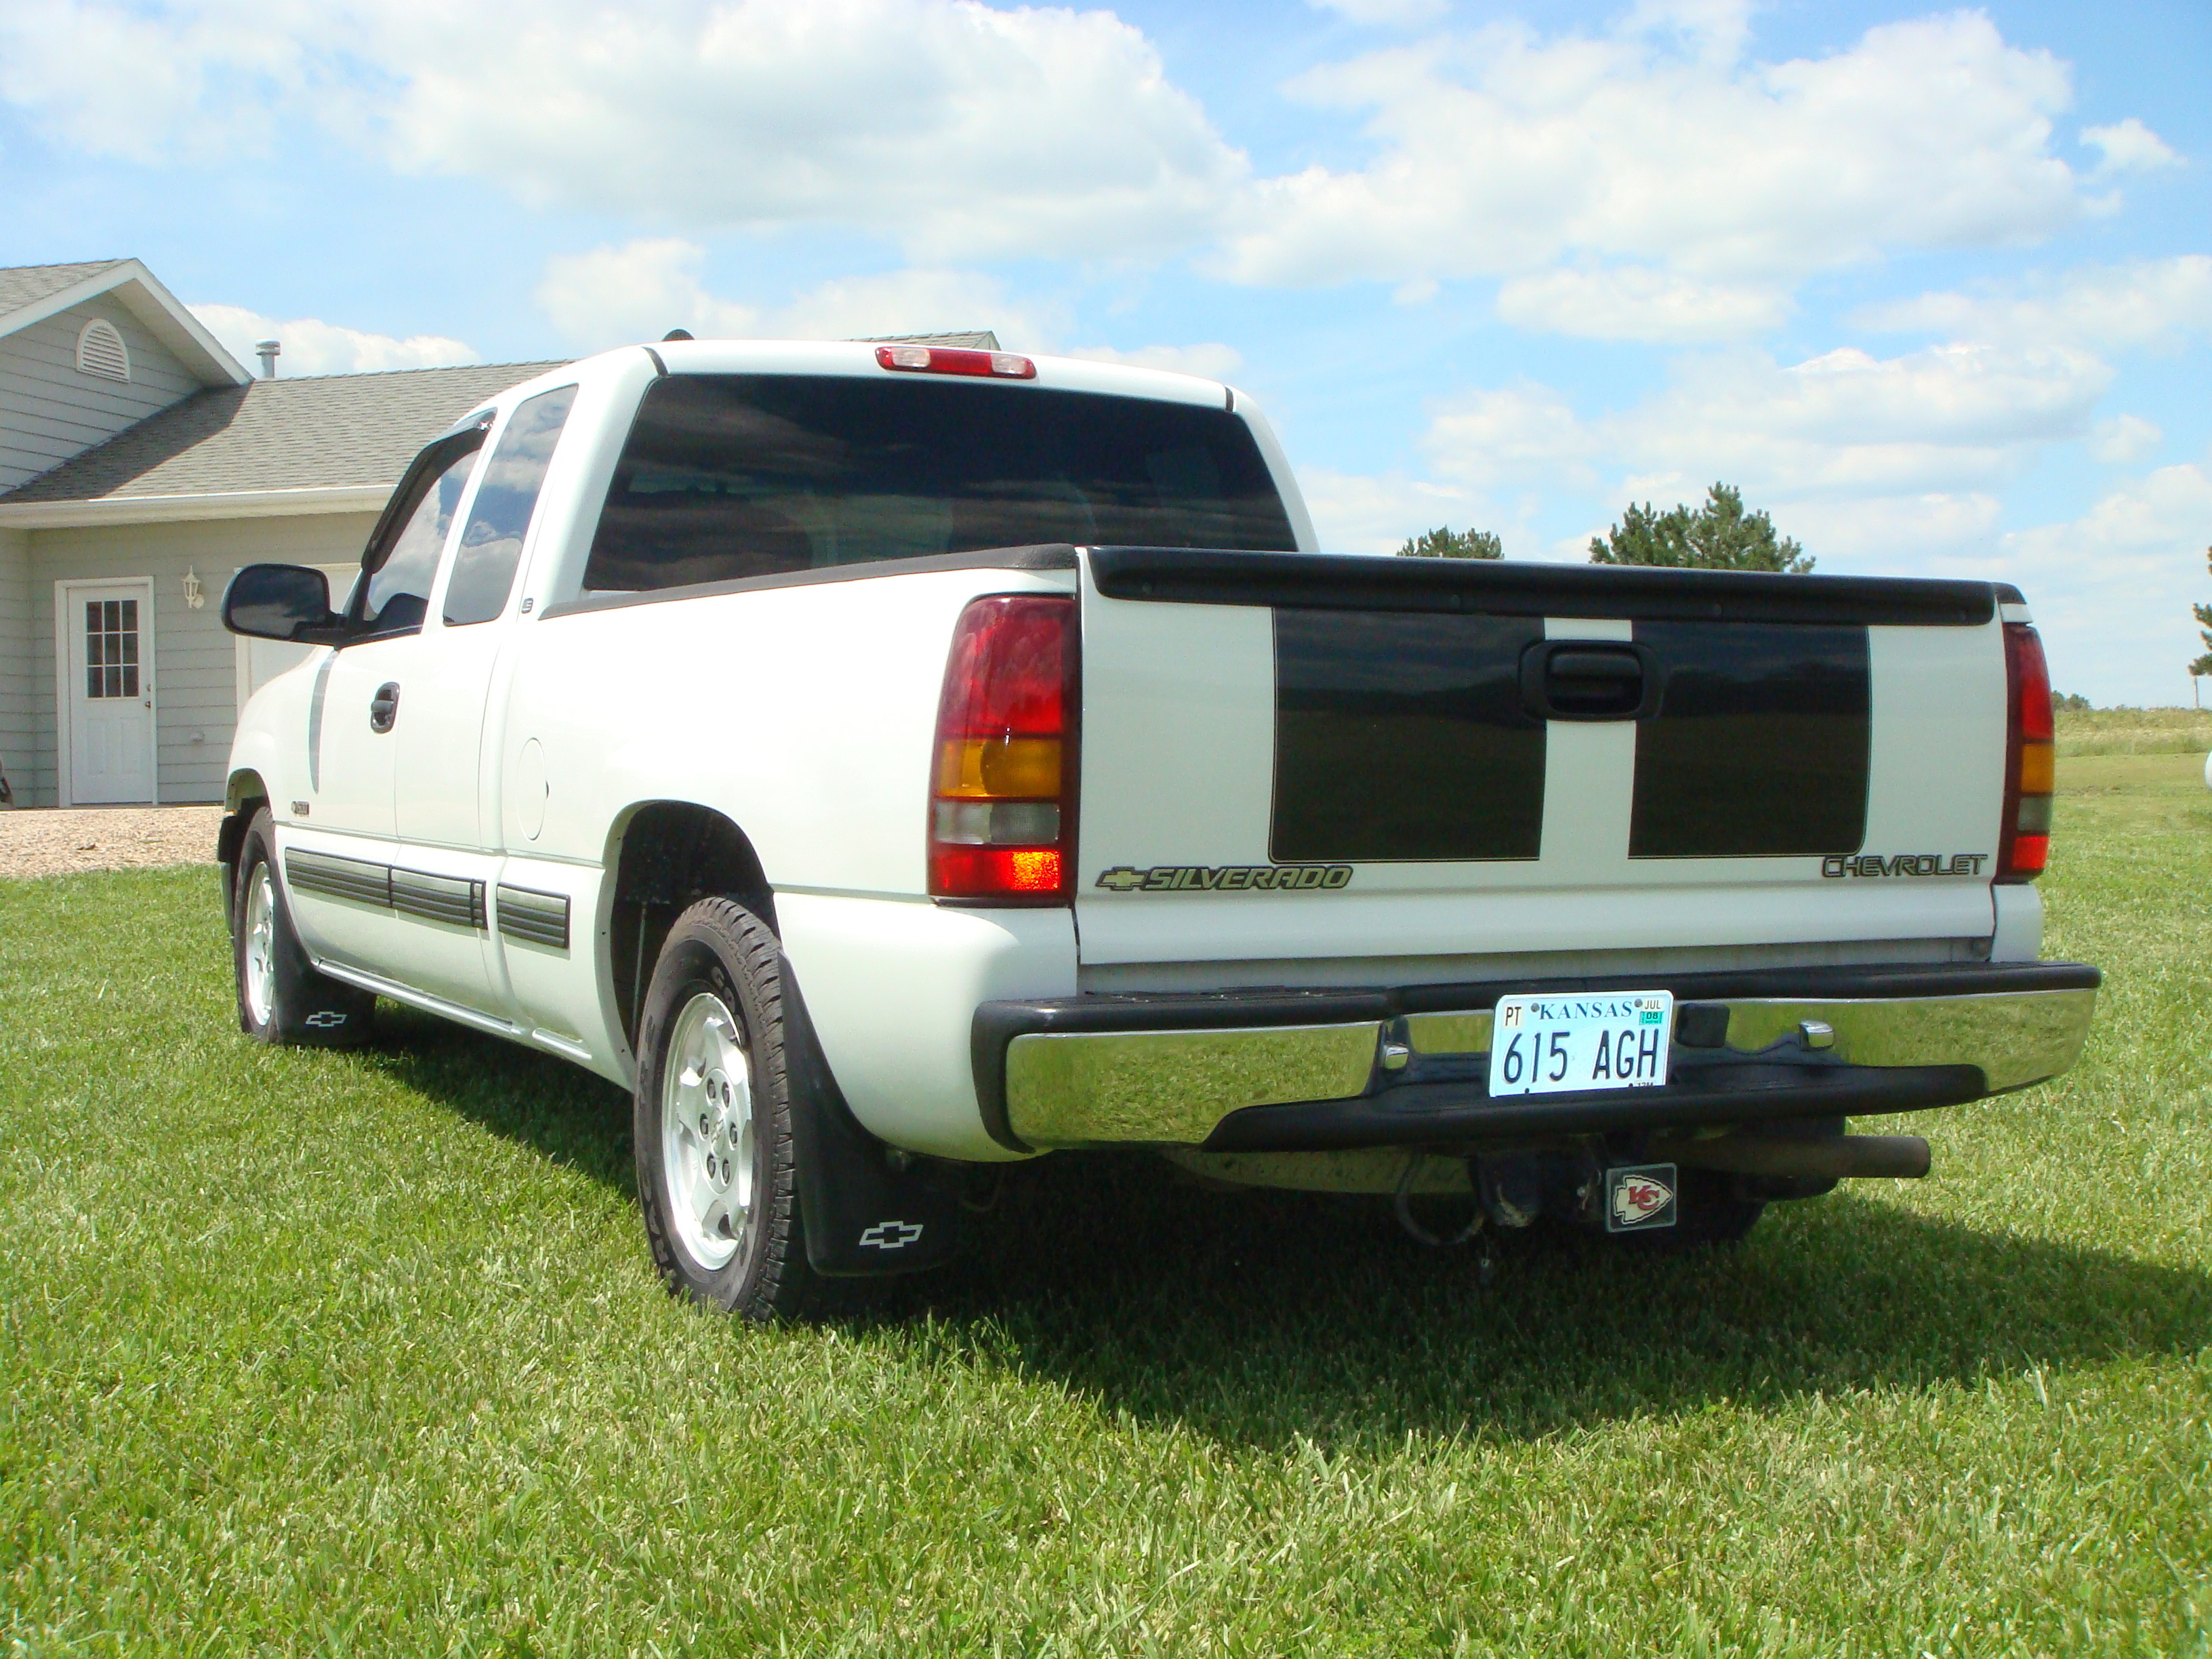 kuecker dj09 2000 chevrolet silverado 1500 regular cab specs photos modification info at cardomain. Black Bedroom Furniture Sets. Home Design Ideas